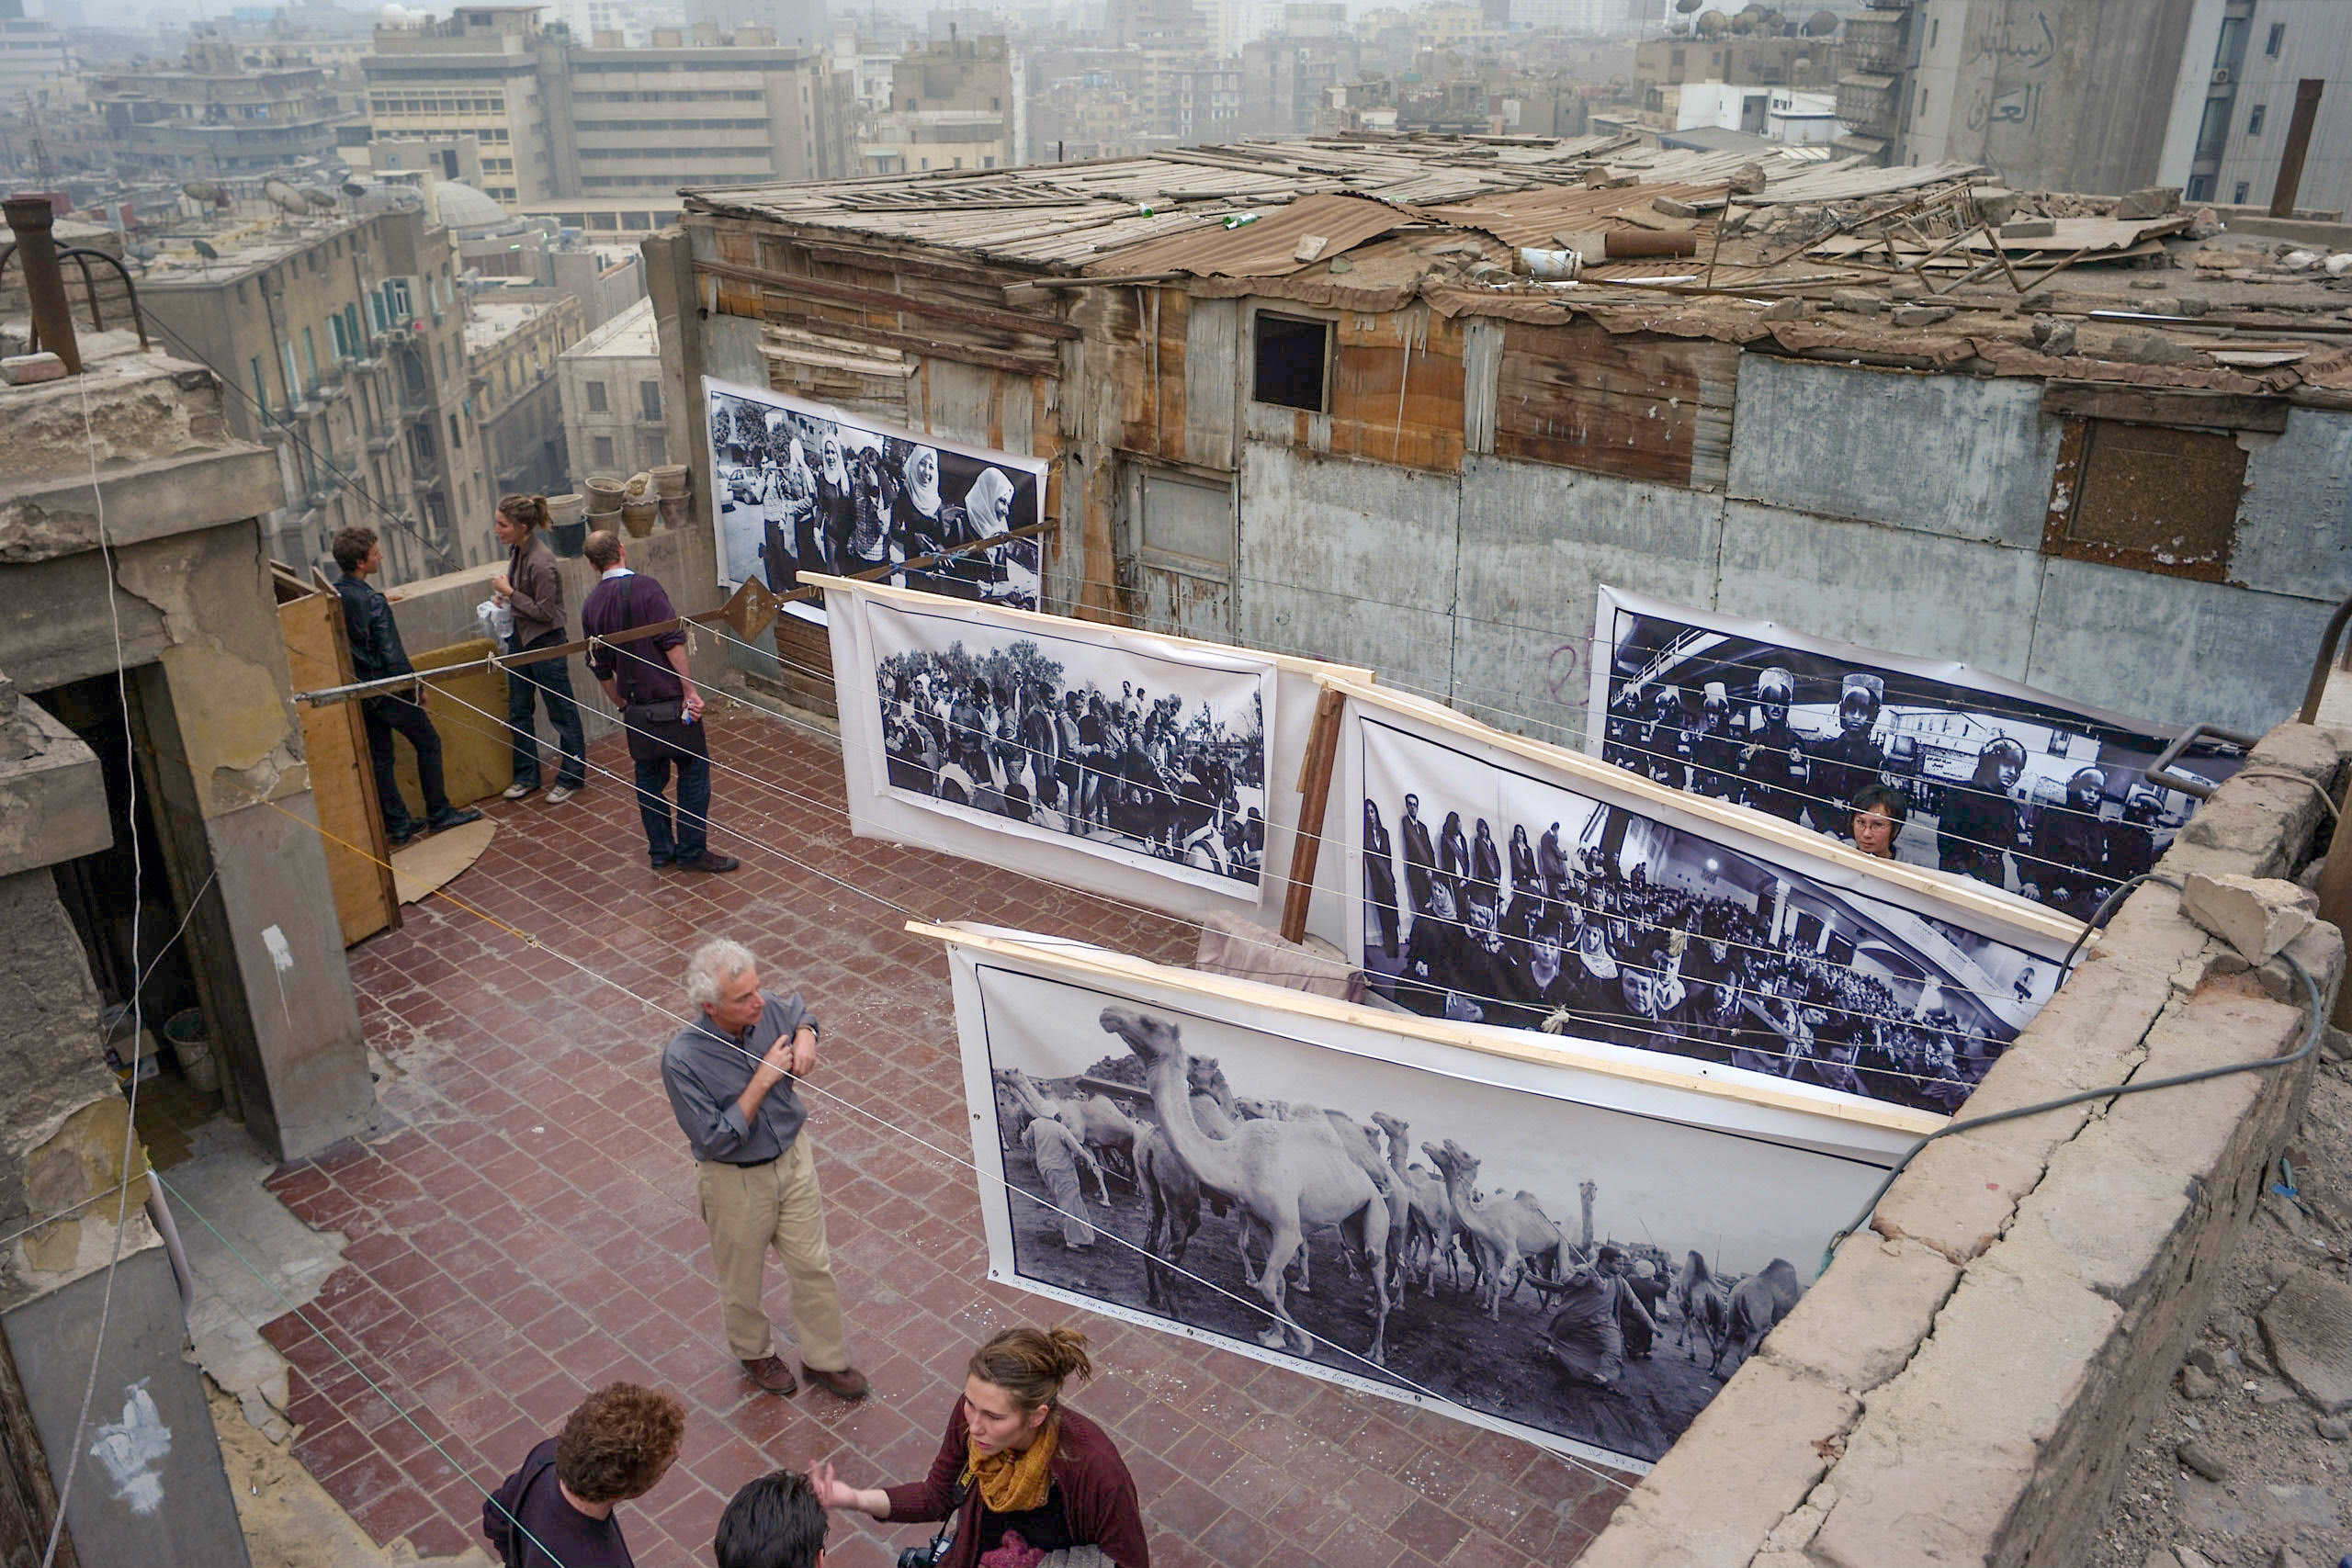 Graffenried Rooftop Installation in Down Town Cairo, March 23, 2007